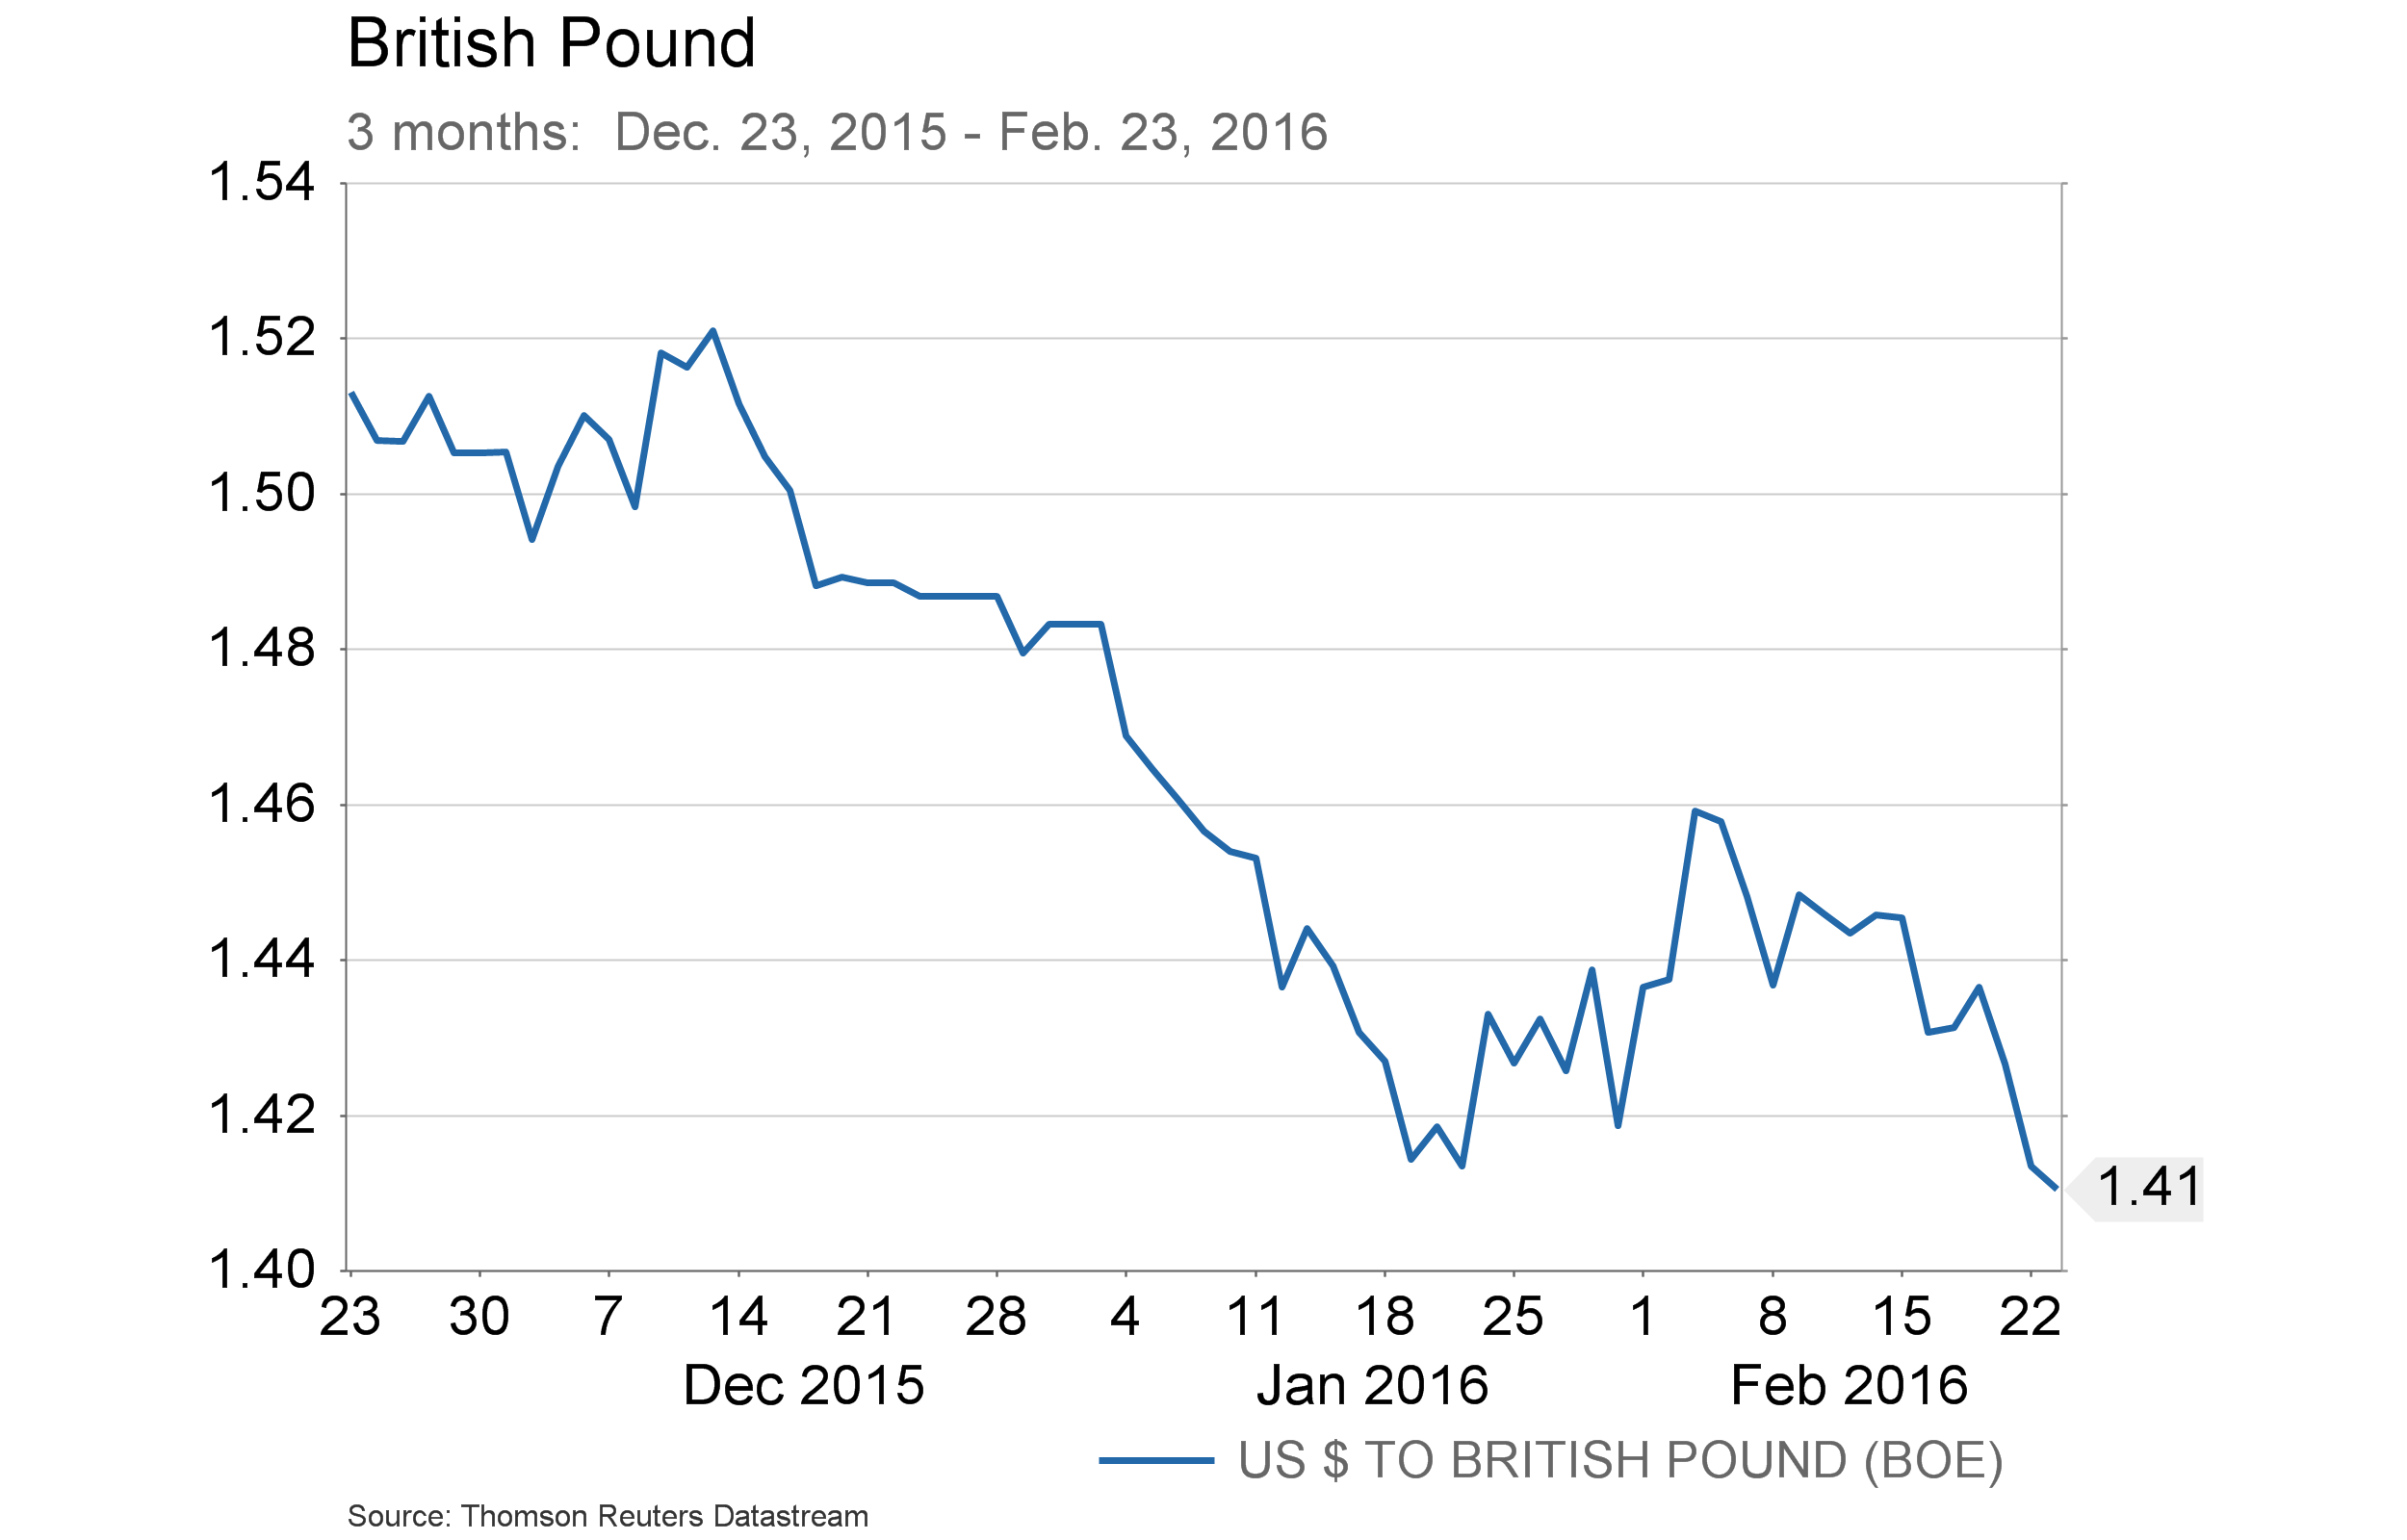 Conference Call charts - British Pound vs. US dollar - 3 months